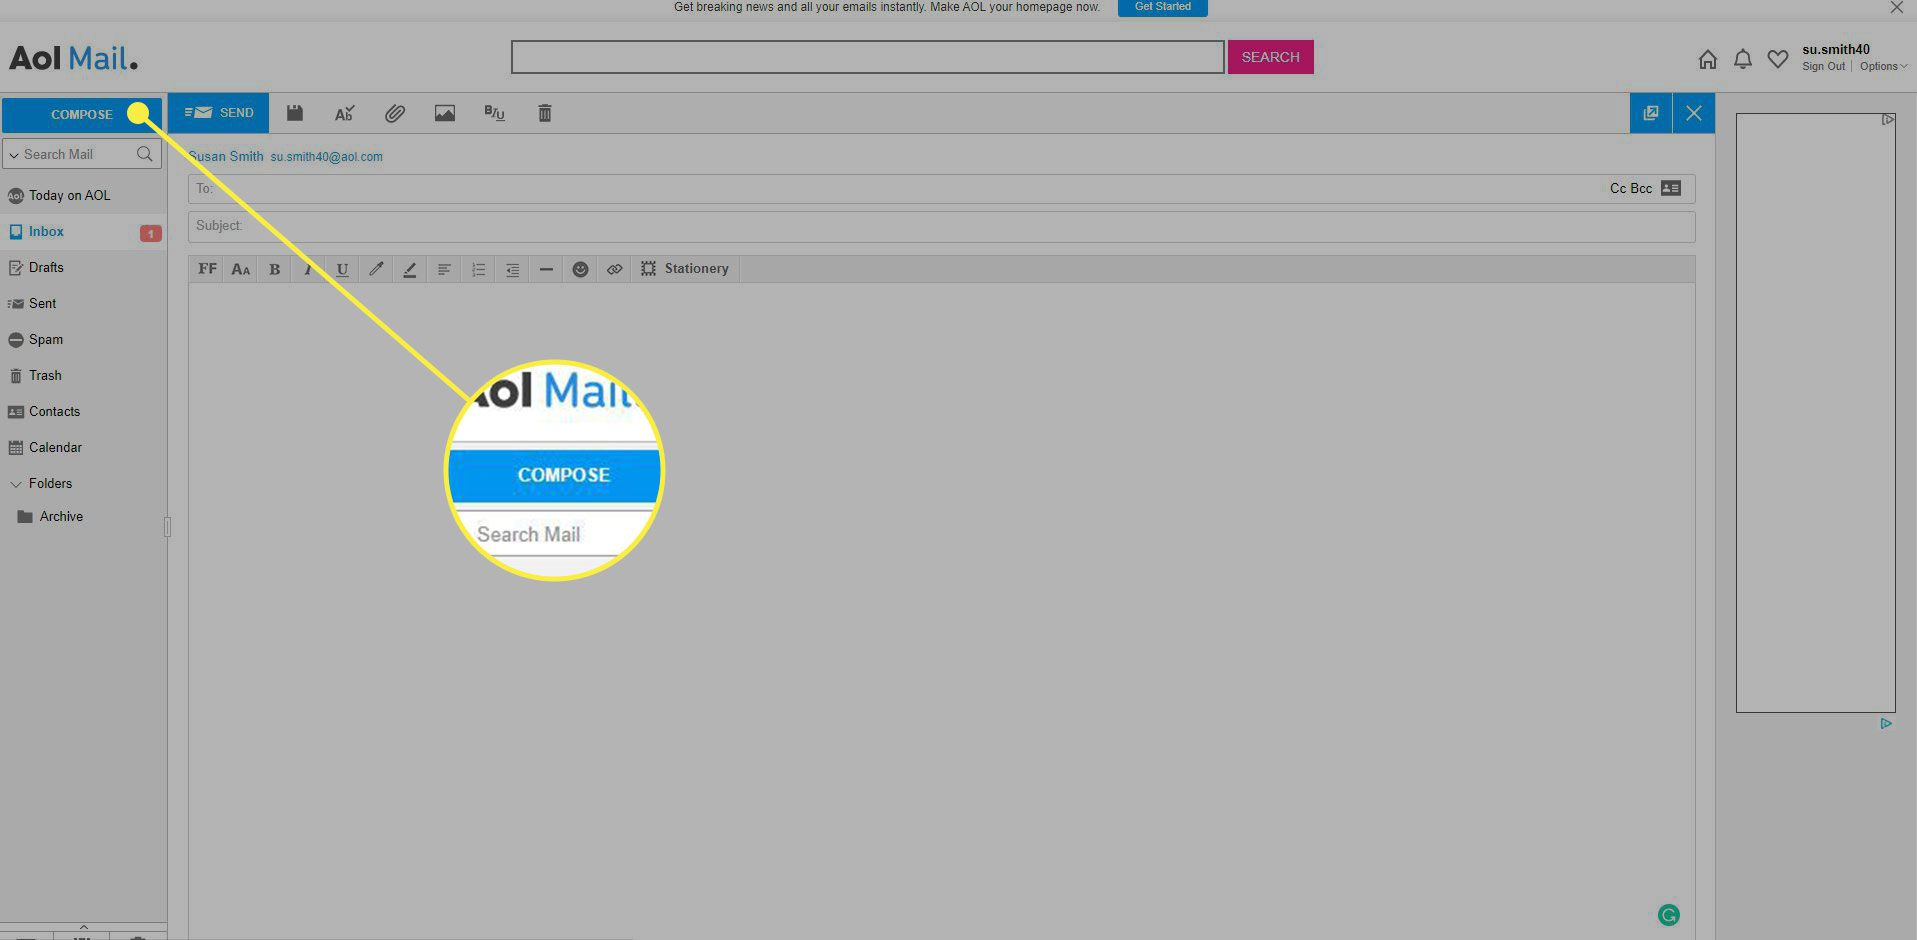 A screenshot of AOL Mail with the Compose button highlighted